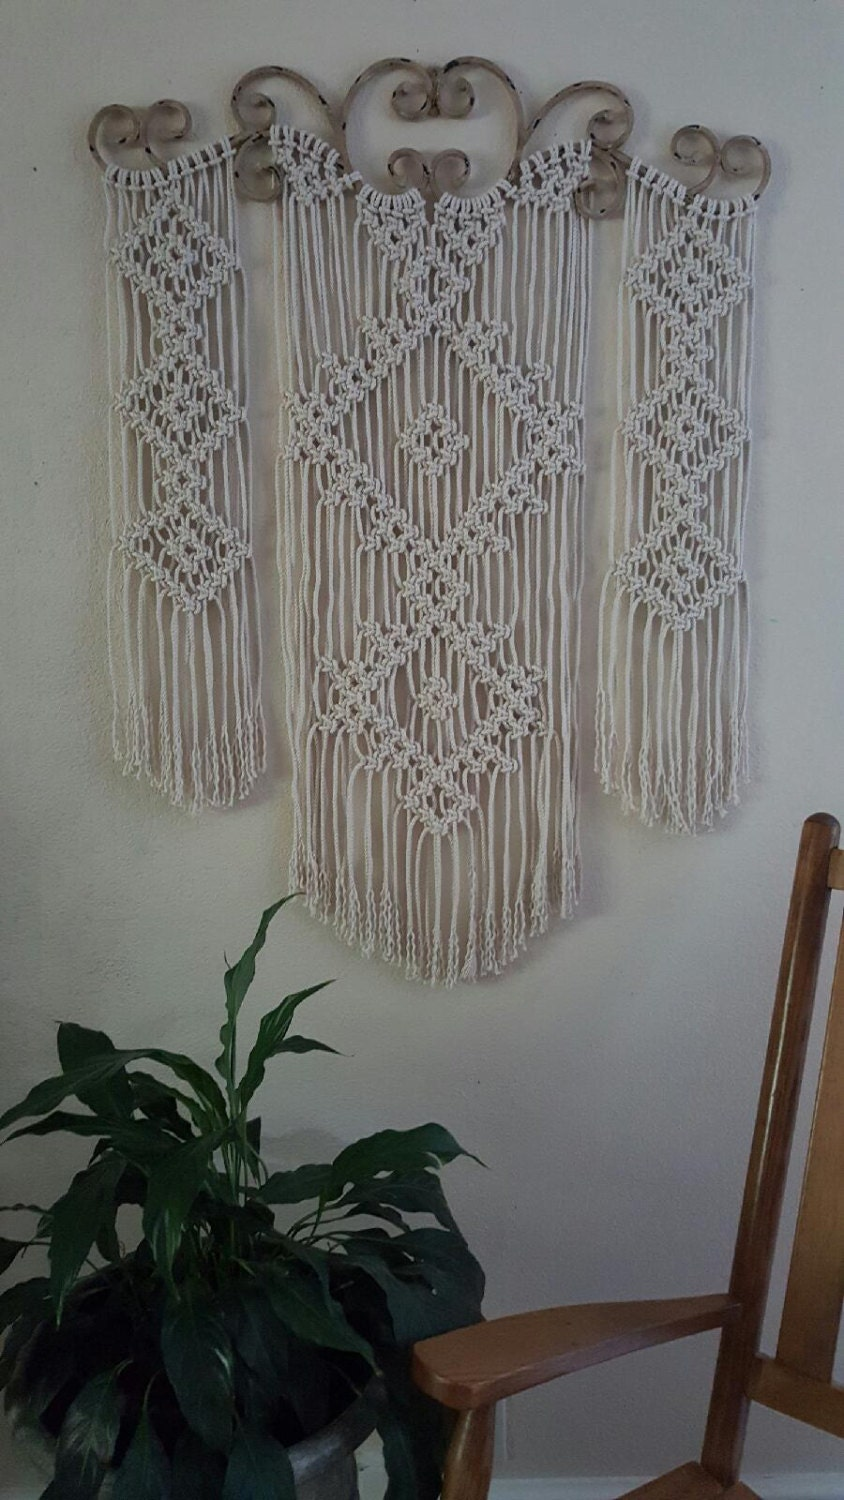 Sale Large Ornamental Iron Macrame Wall Hanging